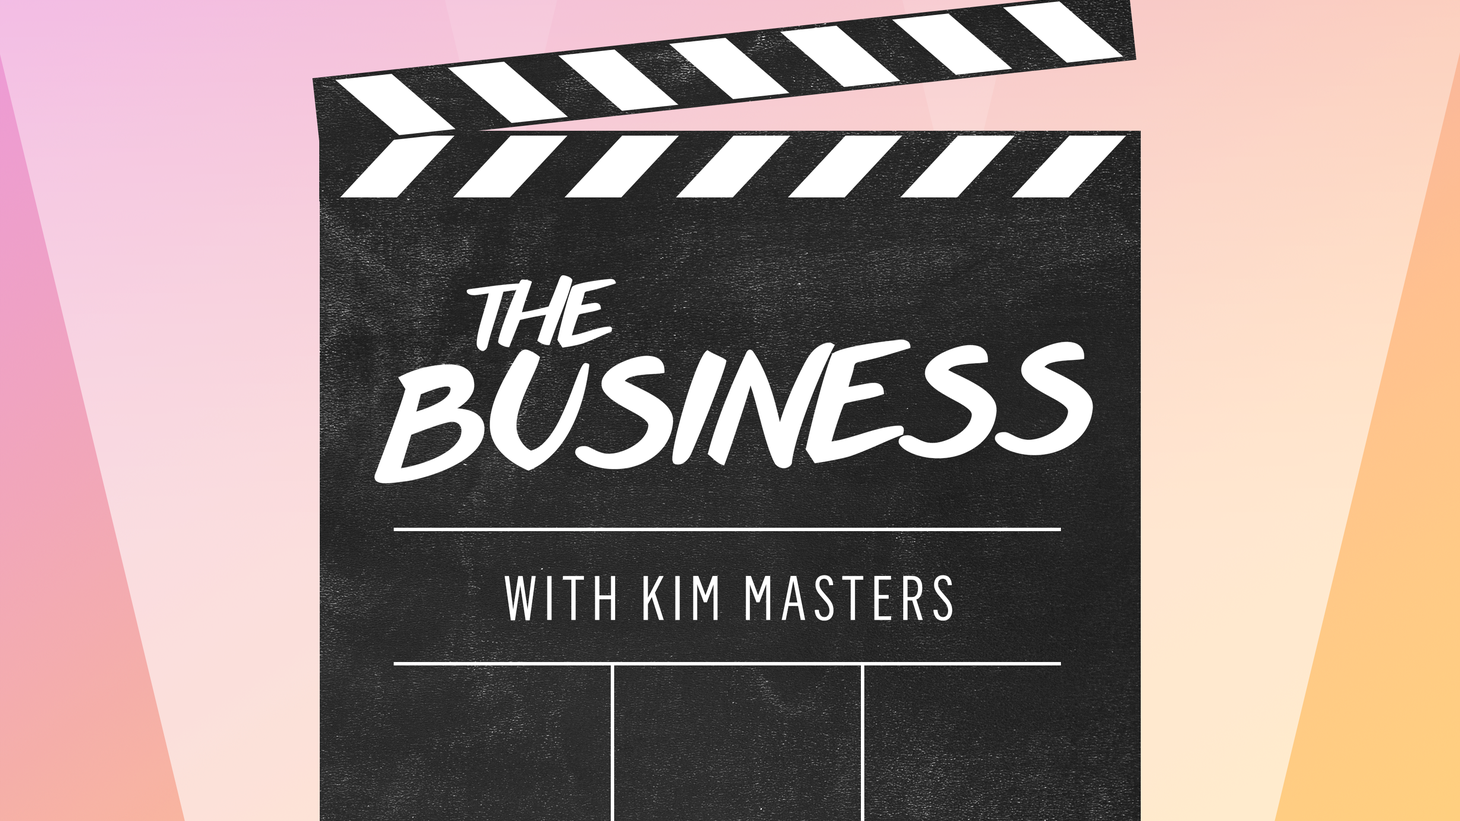 This week, on The Business, we attempt to answer the age-old question: What exactly does a producer do?  Larry Turman, the man behind such films as -The Graduate,- will explain it all for you.  Plus, the TV networks trot out their new shows for the entertainment press, with hilarious results.